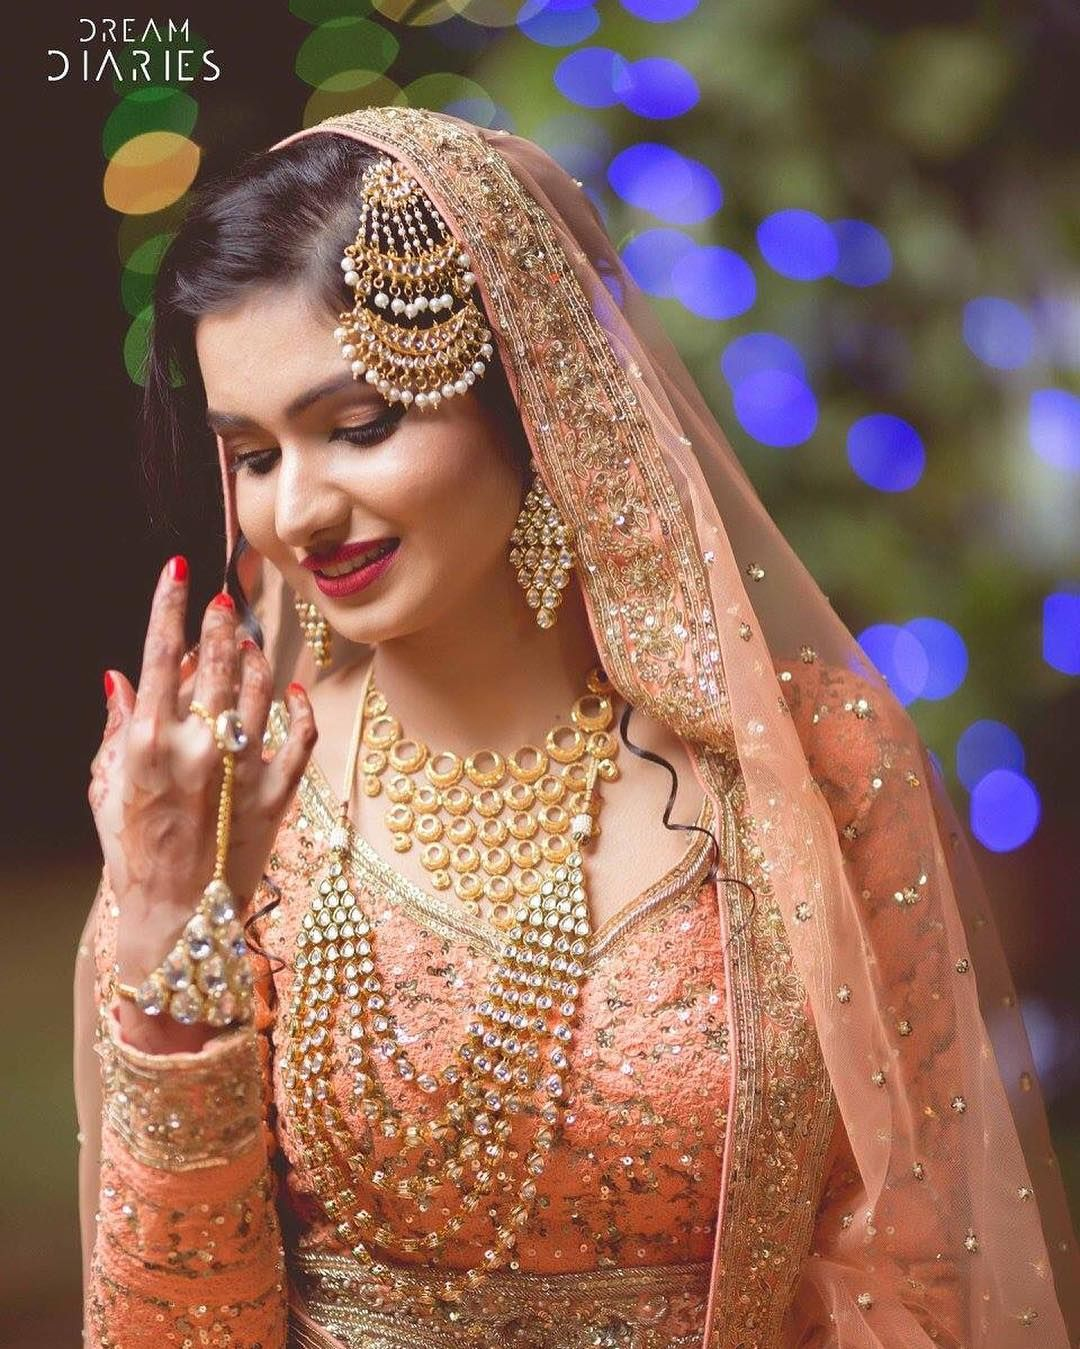 Milchglas Küchenspiegel Photo Credits Dream Diaries Gorgeous Bride